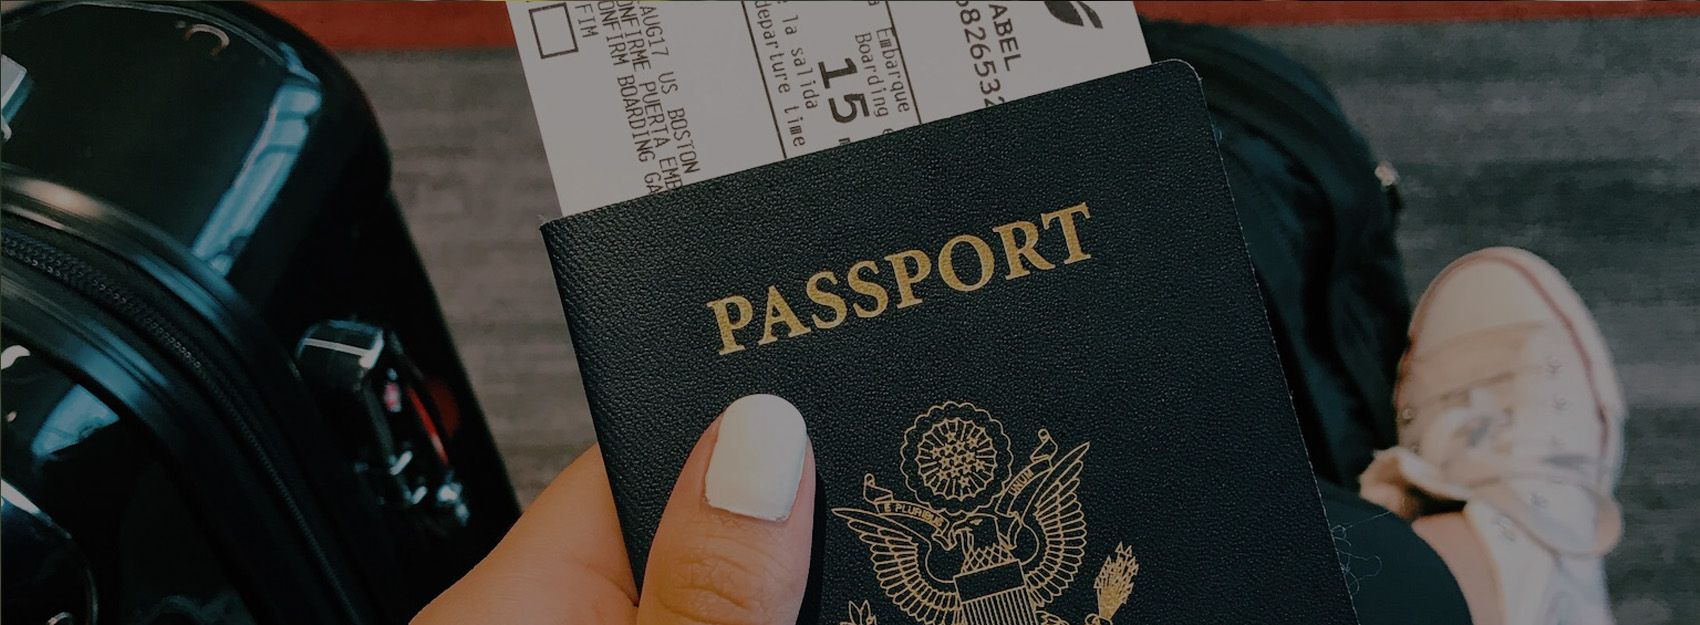 hand with white painted nails holding passport and boarding pass with suitcase in background